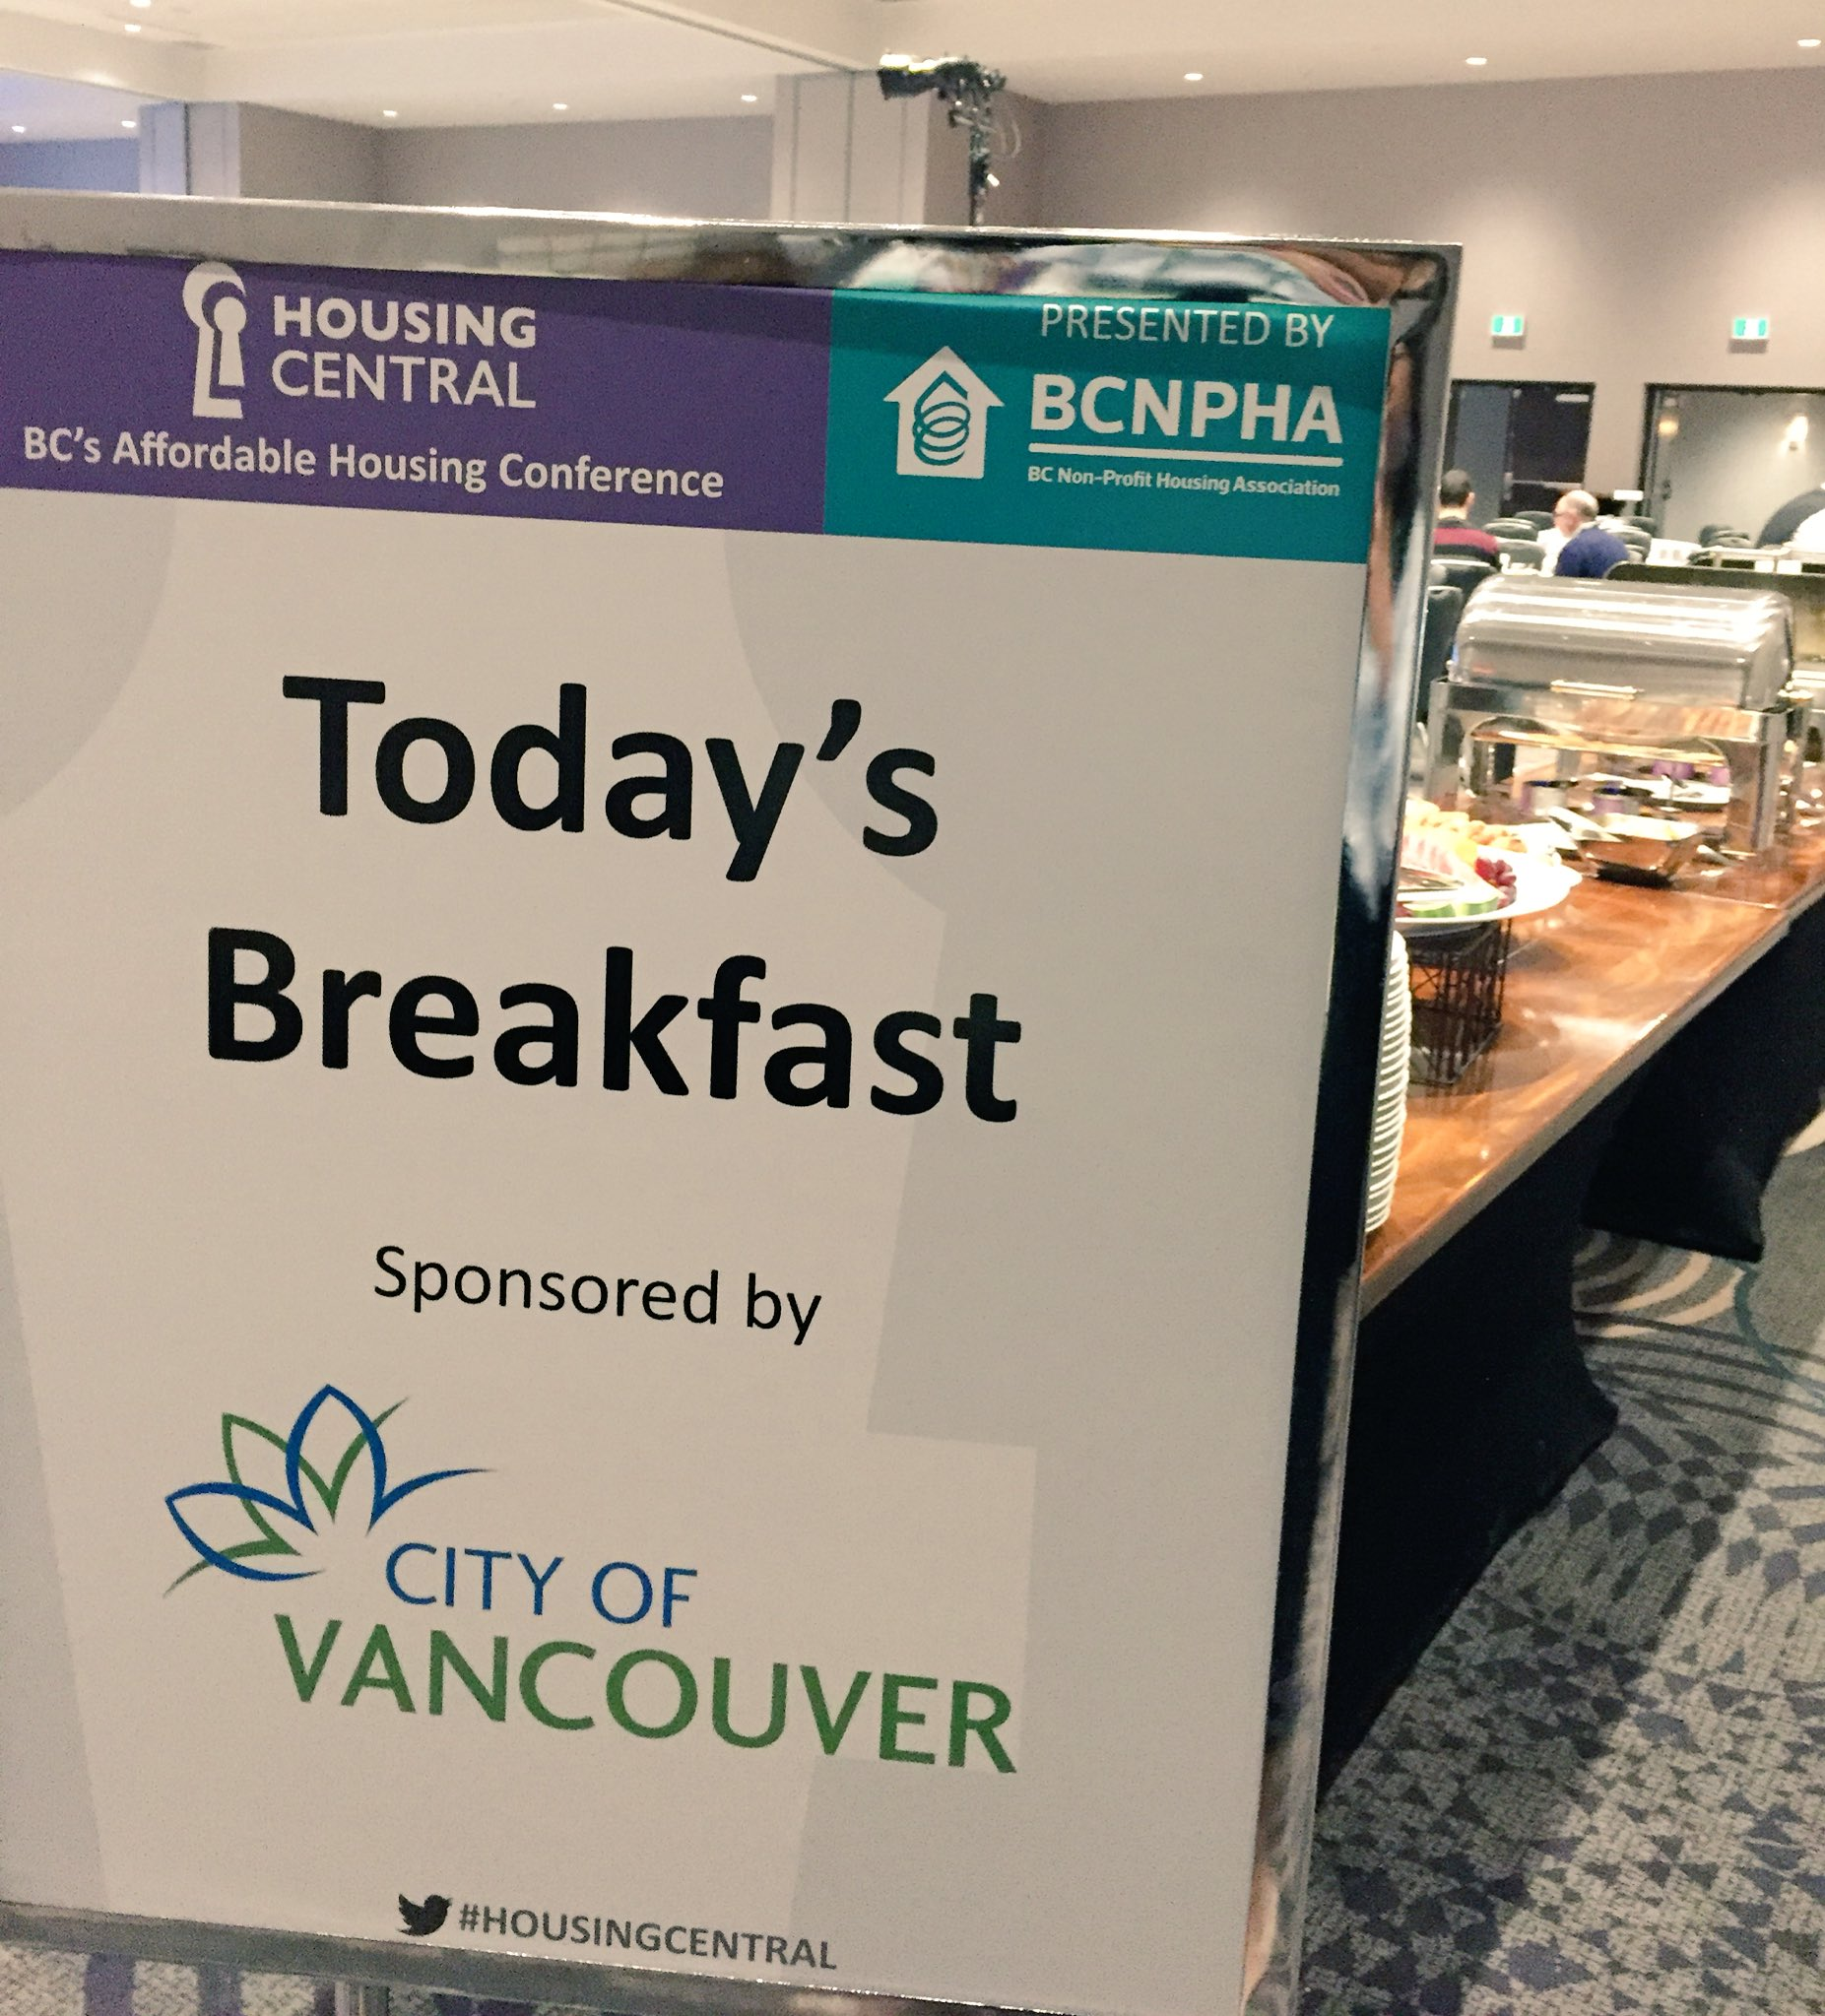 Thank you to Platinum Sponsor @CityofVancouver for sponsoring this morning's #HousingCentral breakfast! https://t.co/3hkGCUS3AB